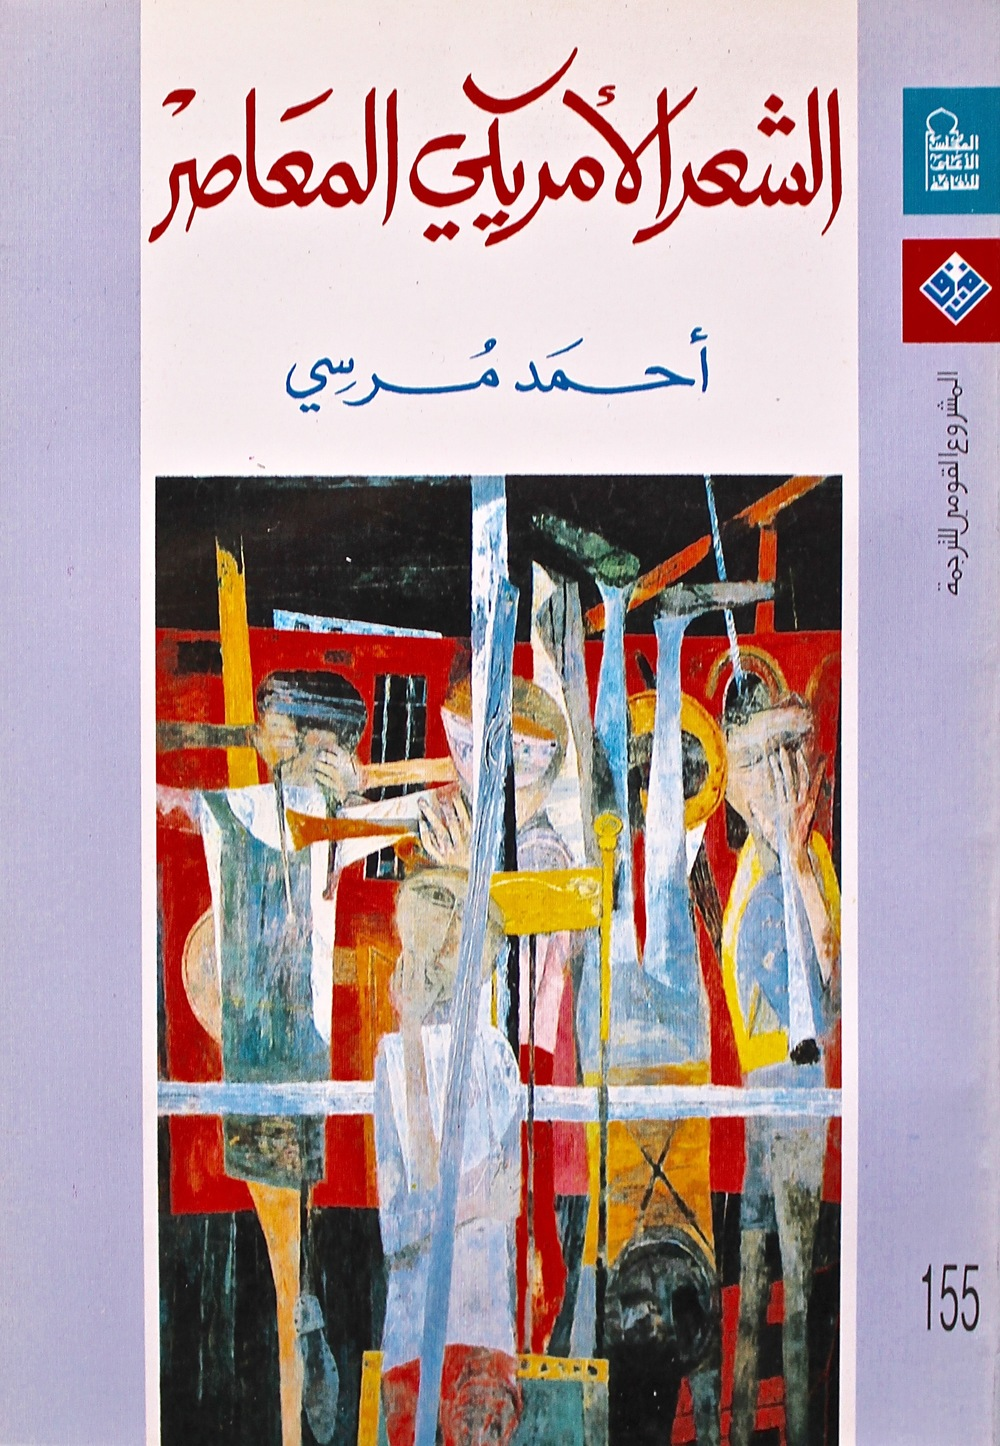 Ahmed_Morsi_Contemporary_American_Poetry.jpg